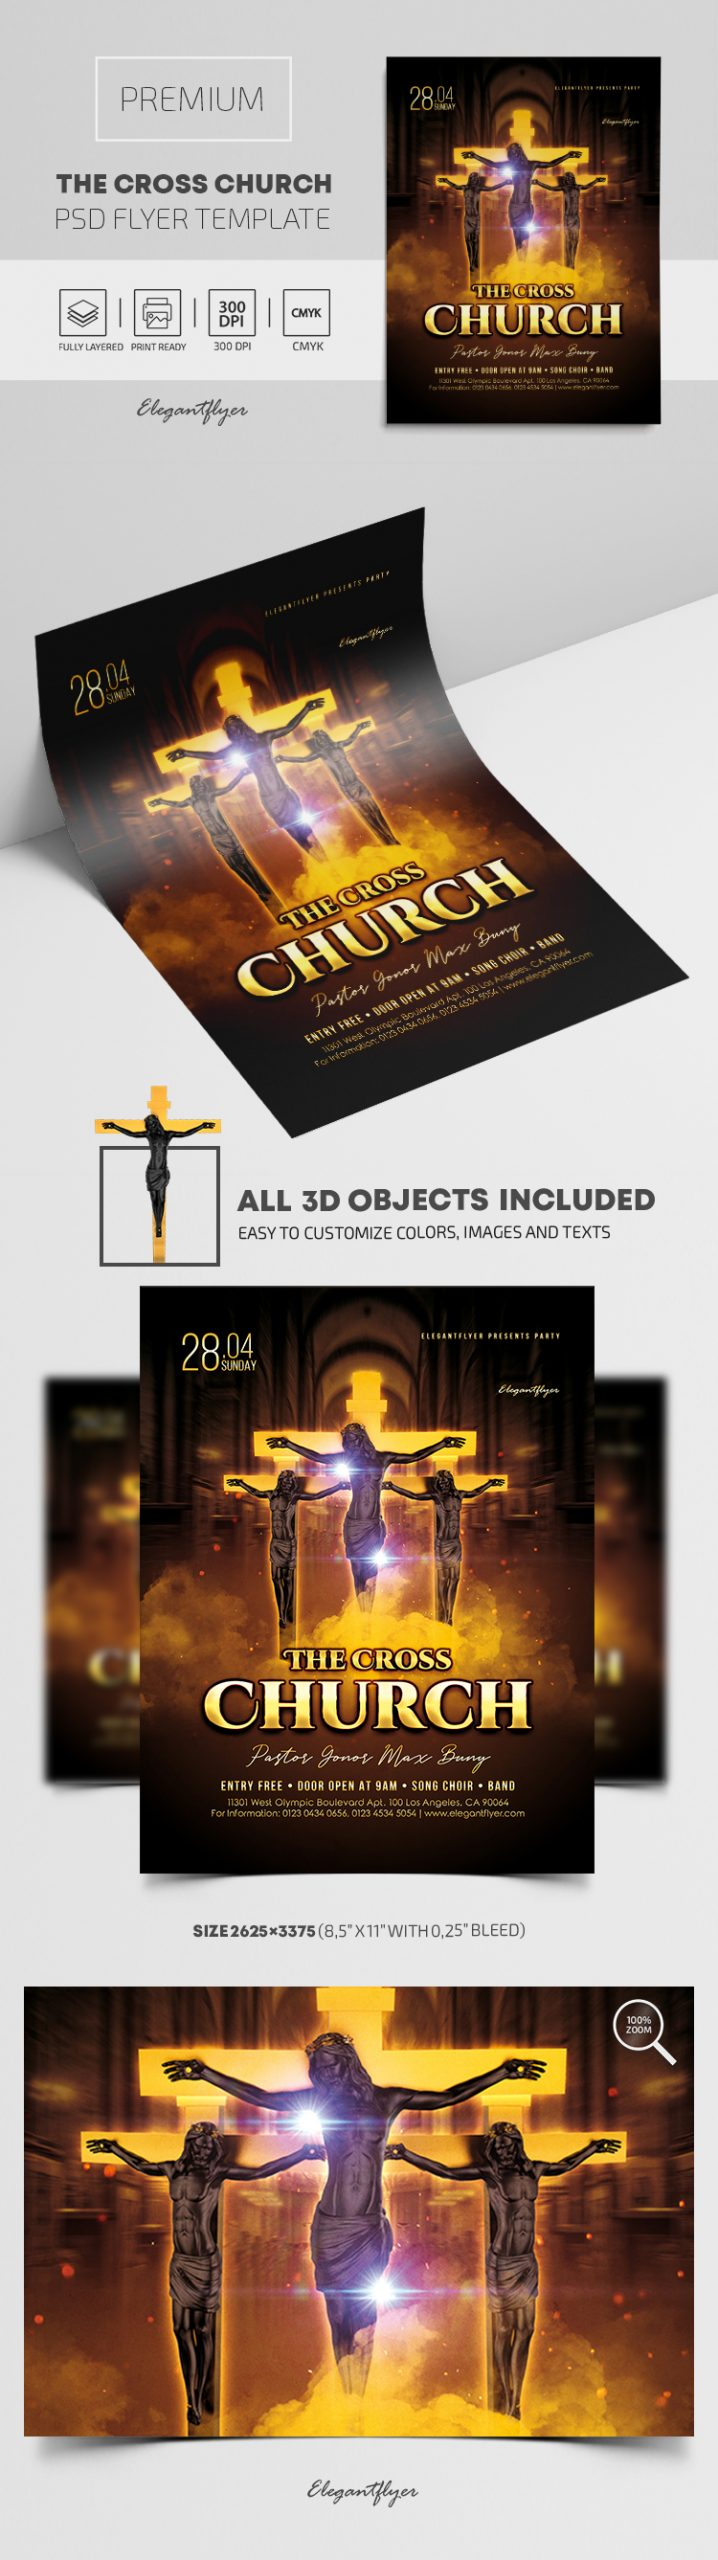 The Cross Church – Premium PSD Flyer Template